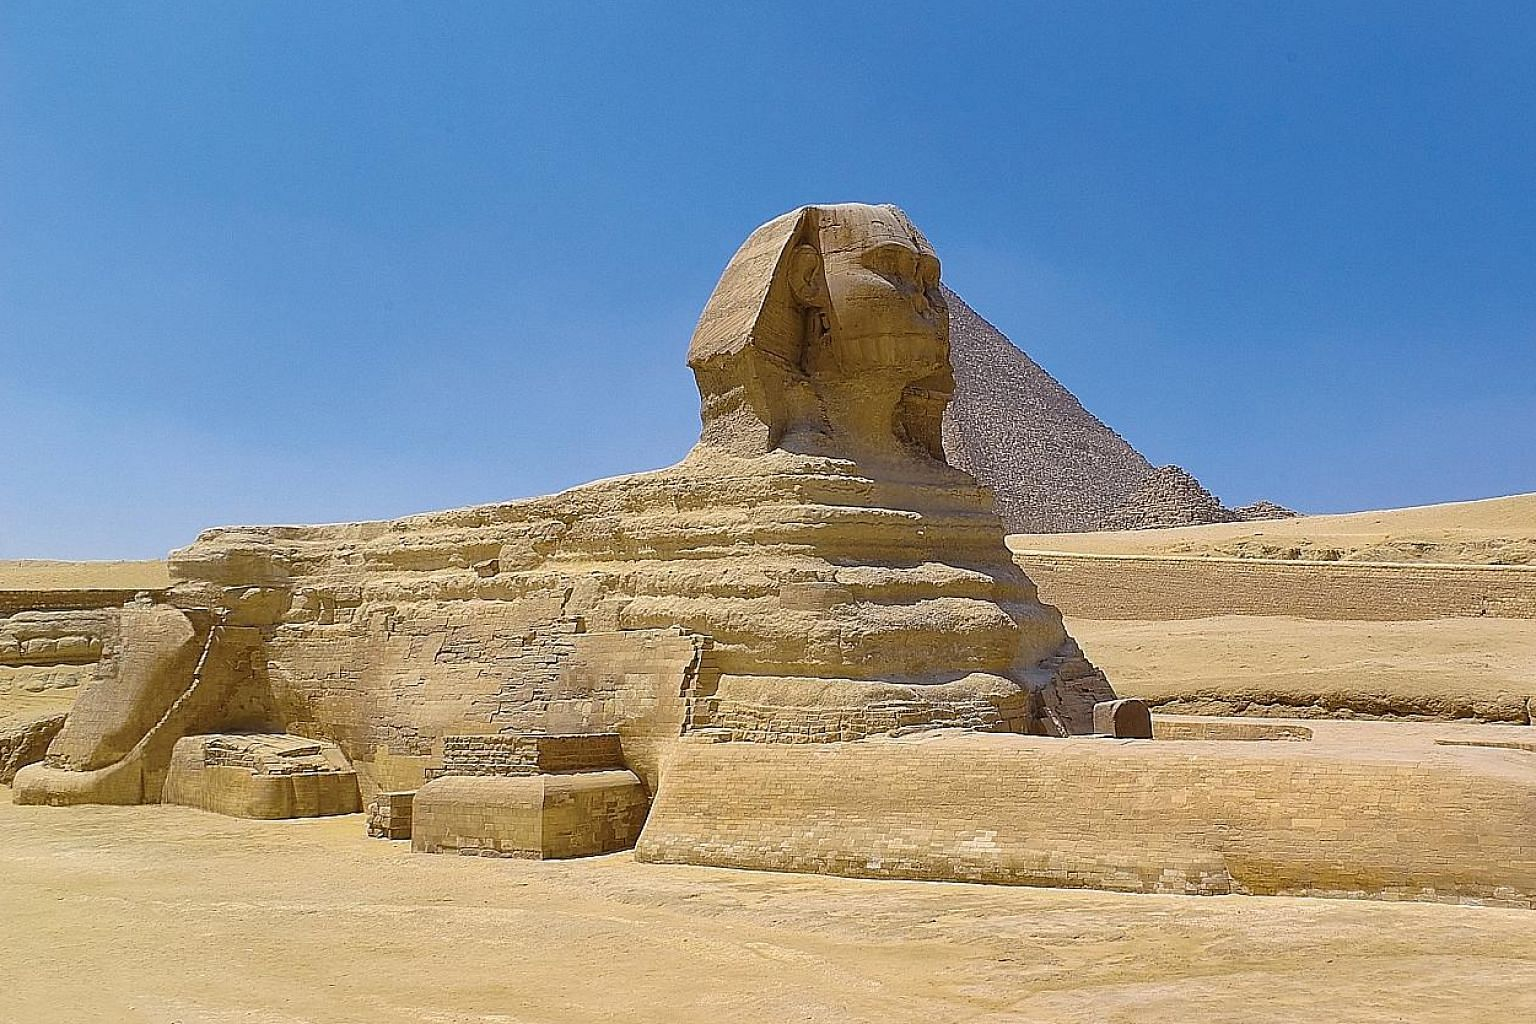 The Great Sphinx of Giza stands on the Giza Plateau on the west bank of the Nile river.